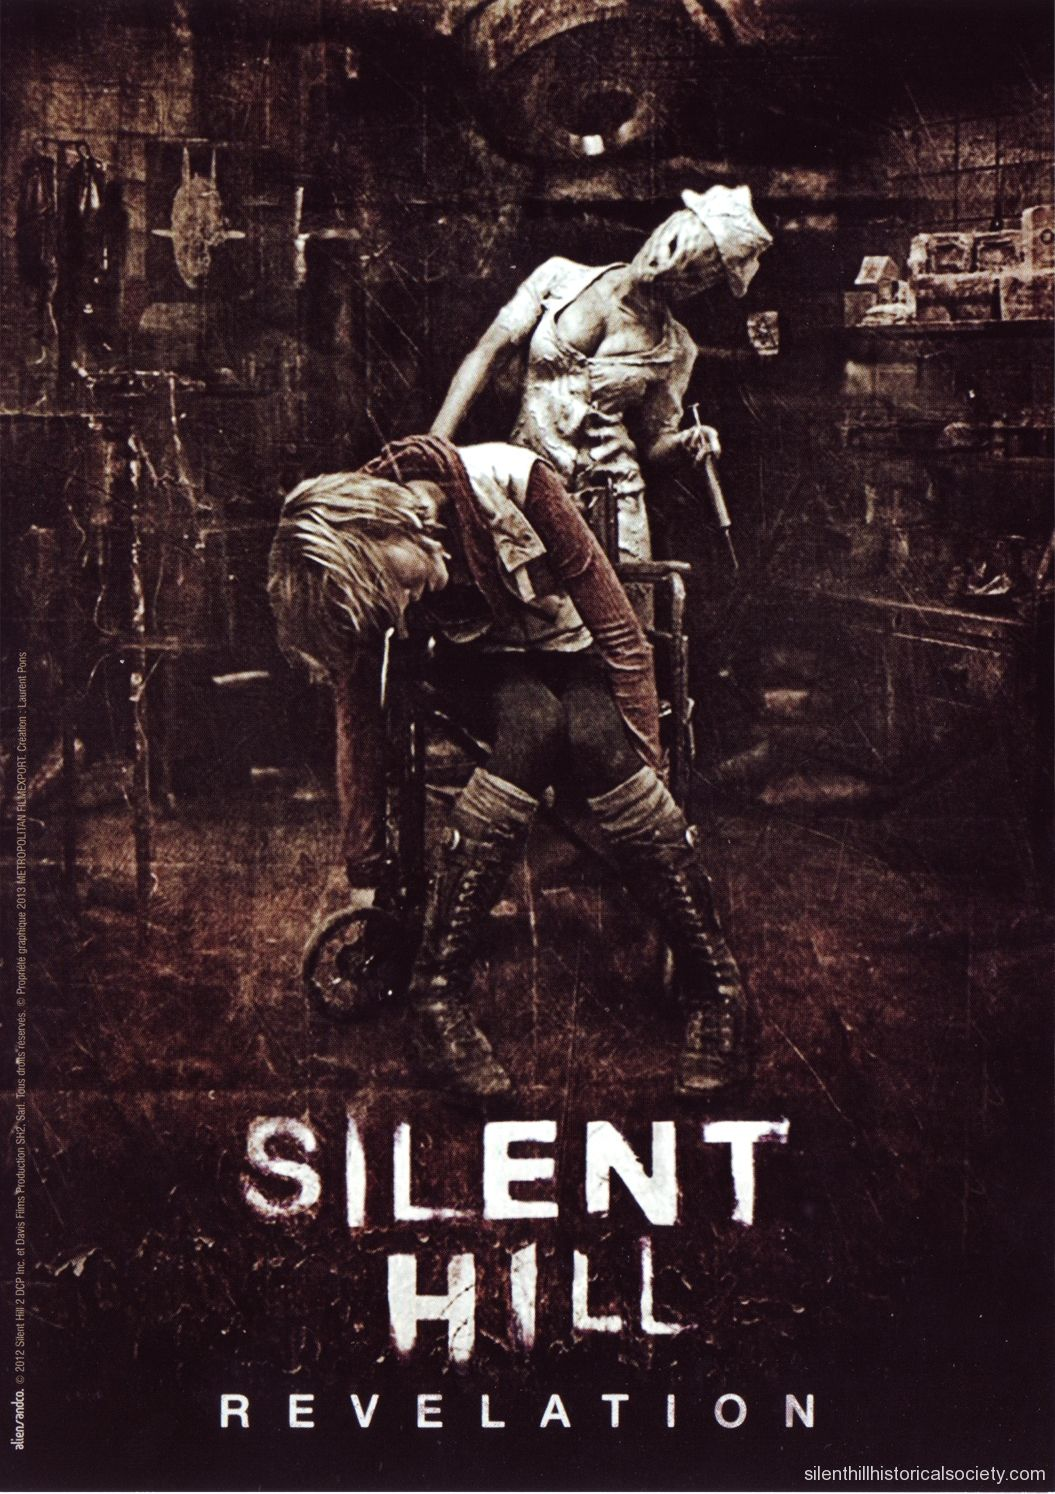 Silent Hill Movie Posters - Silent Hill Memories |Silent Hill Movie Poster